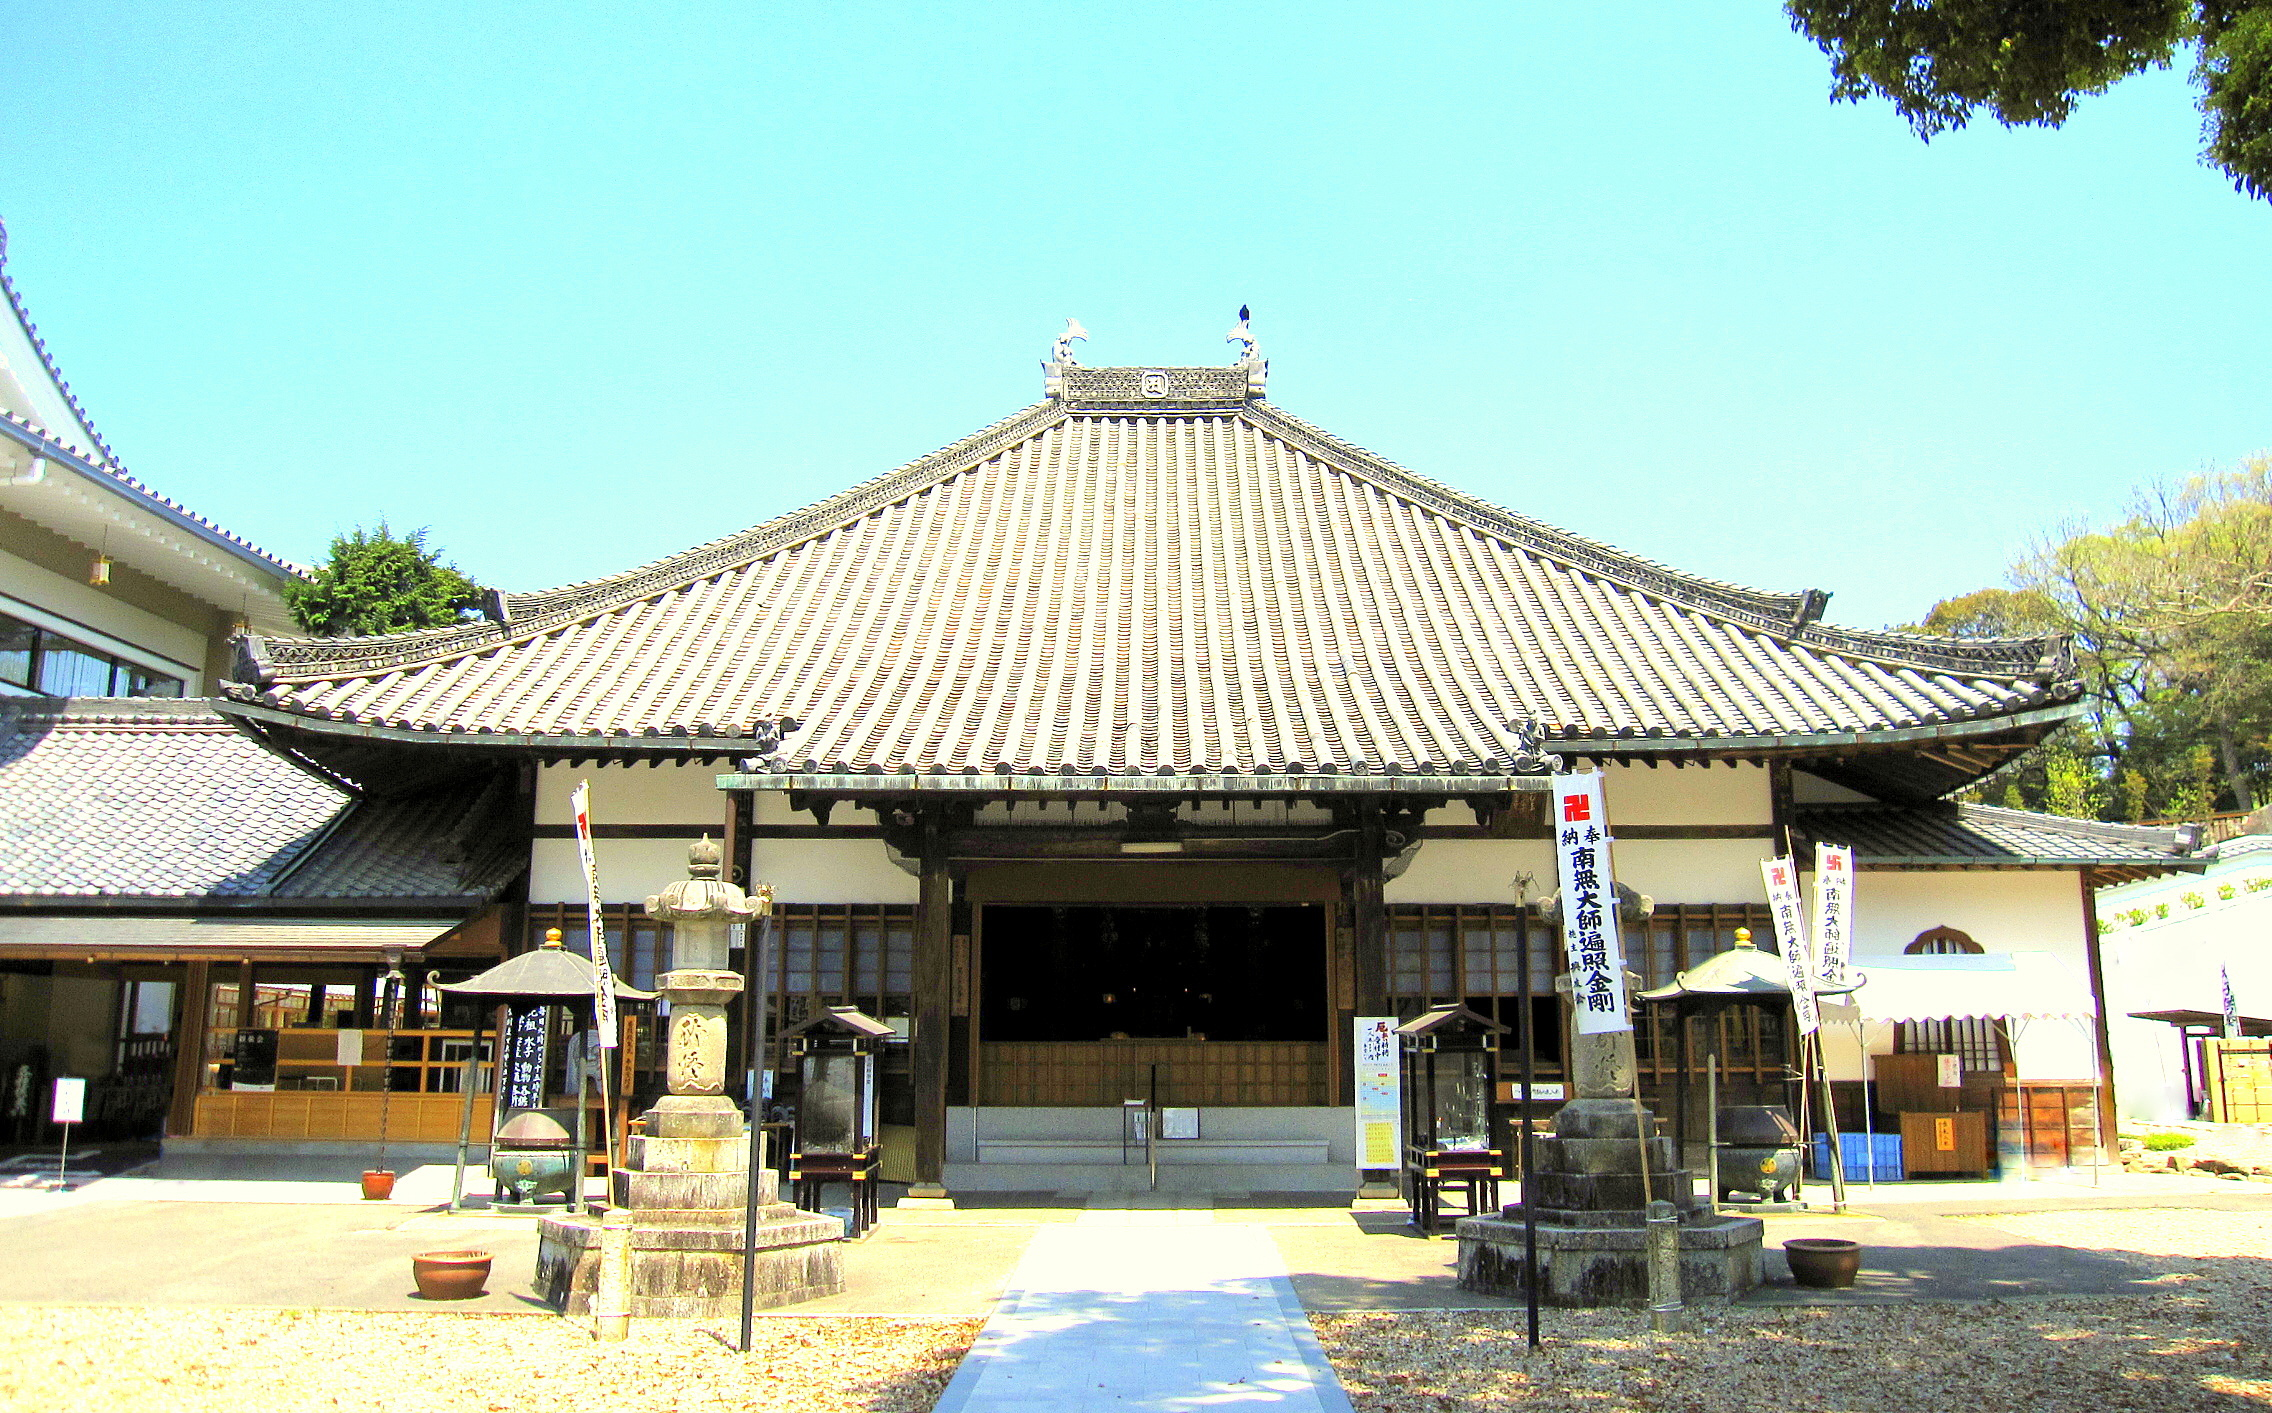 Kosho-ji Temple Shingon Buddhist - Yagoto, Nagoa -Japan